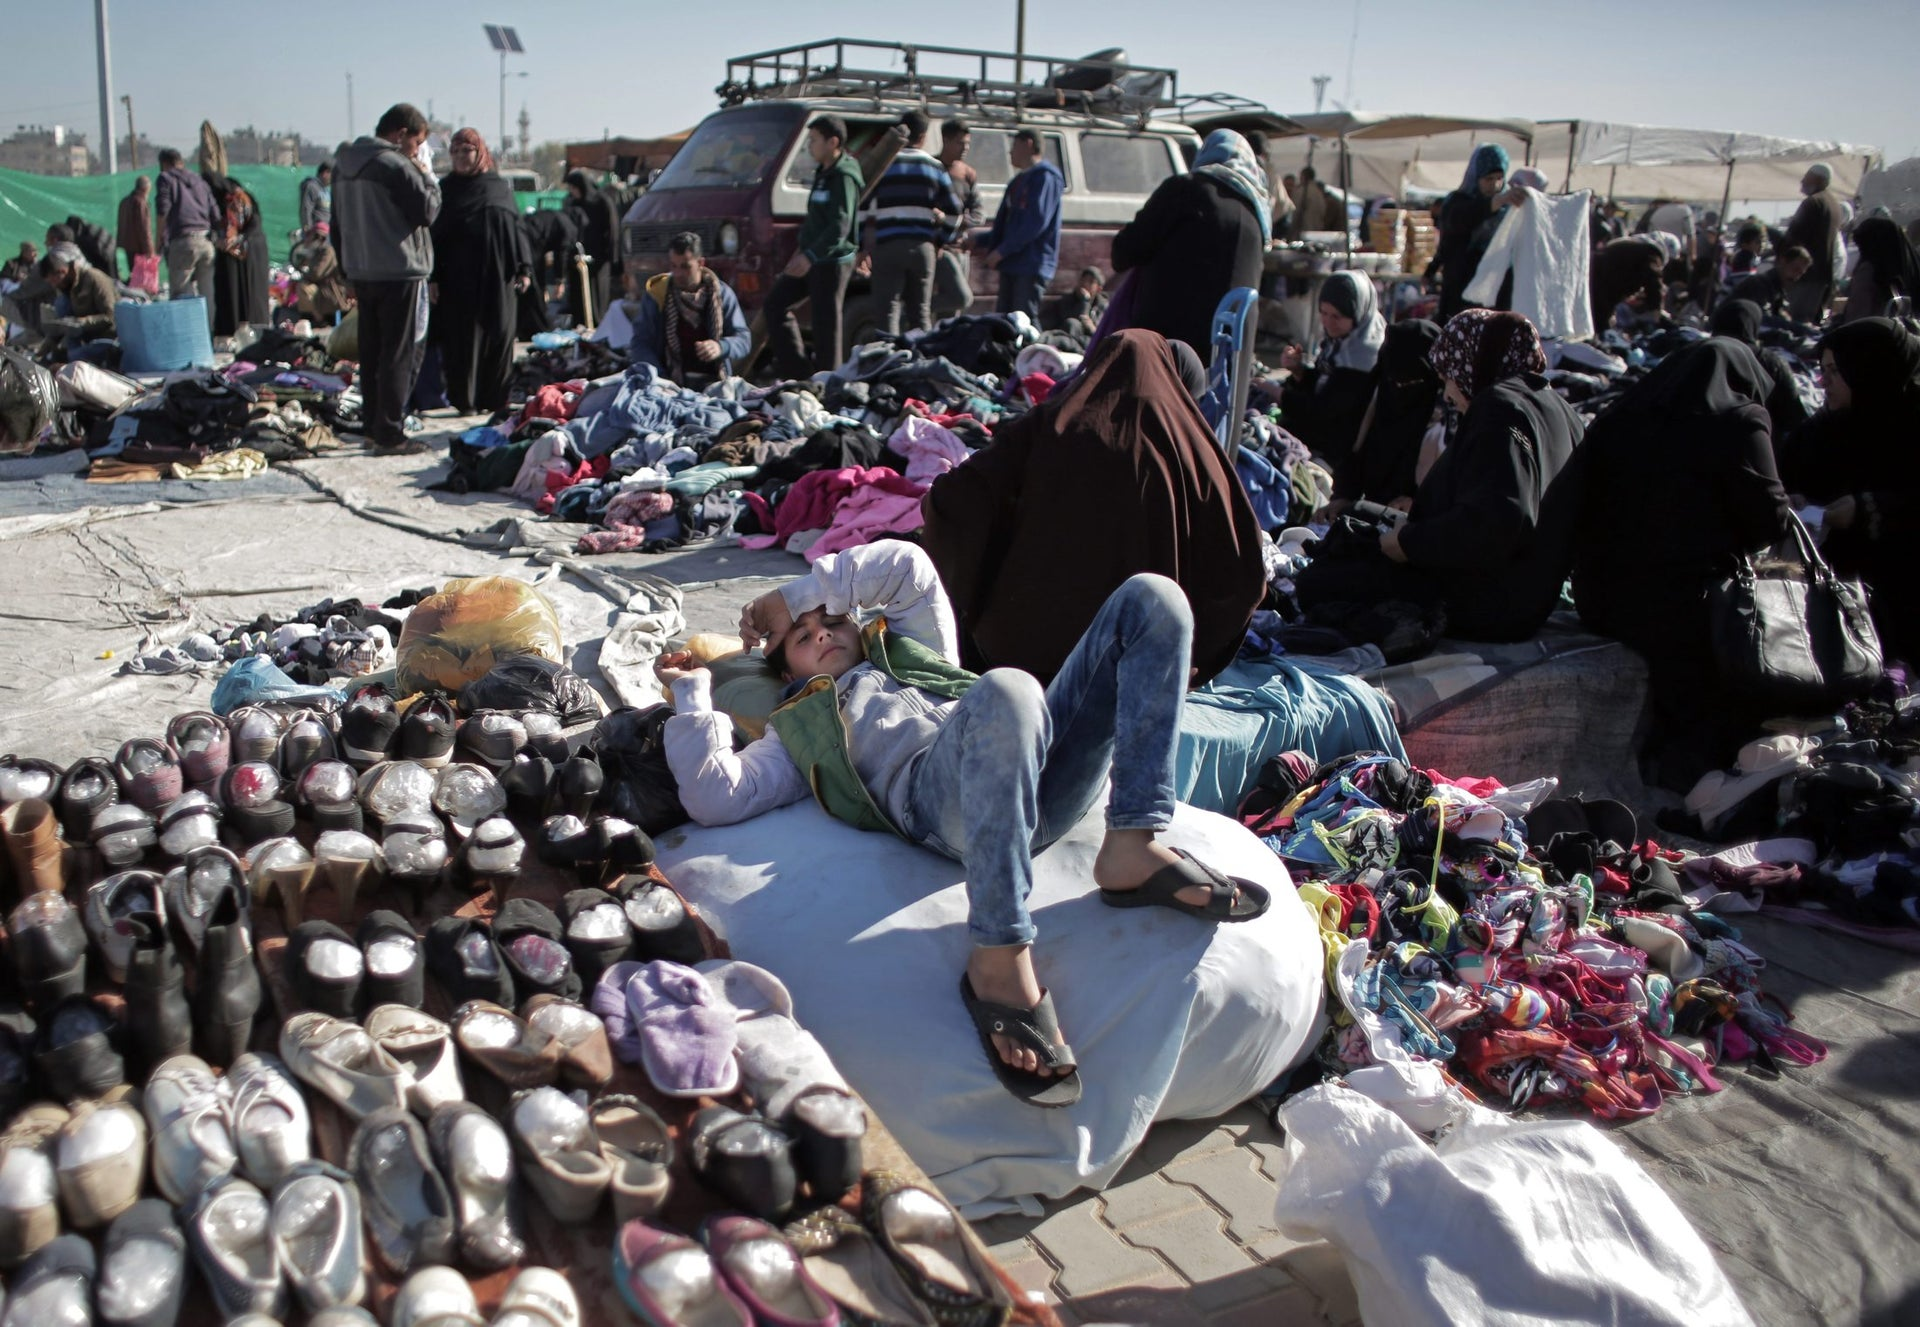 A Palestinian boy lays next to displayed used shoes for sale at the weekly flea market in Nuseirat refugee camp, central Gaza Strip, February 15,2016.